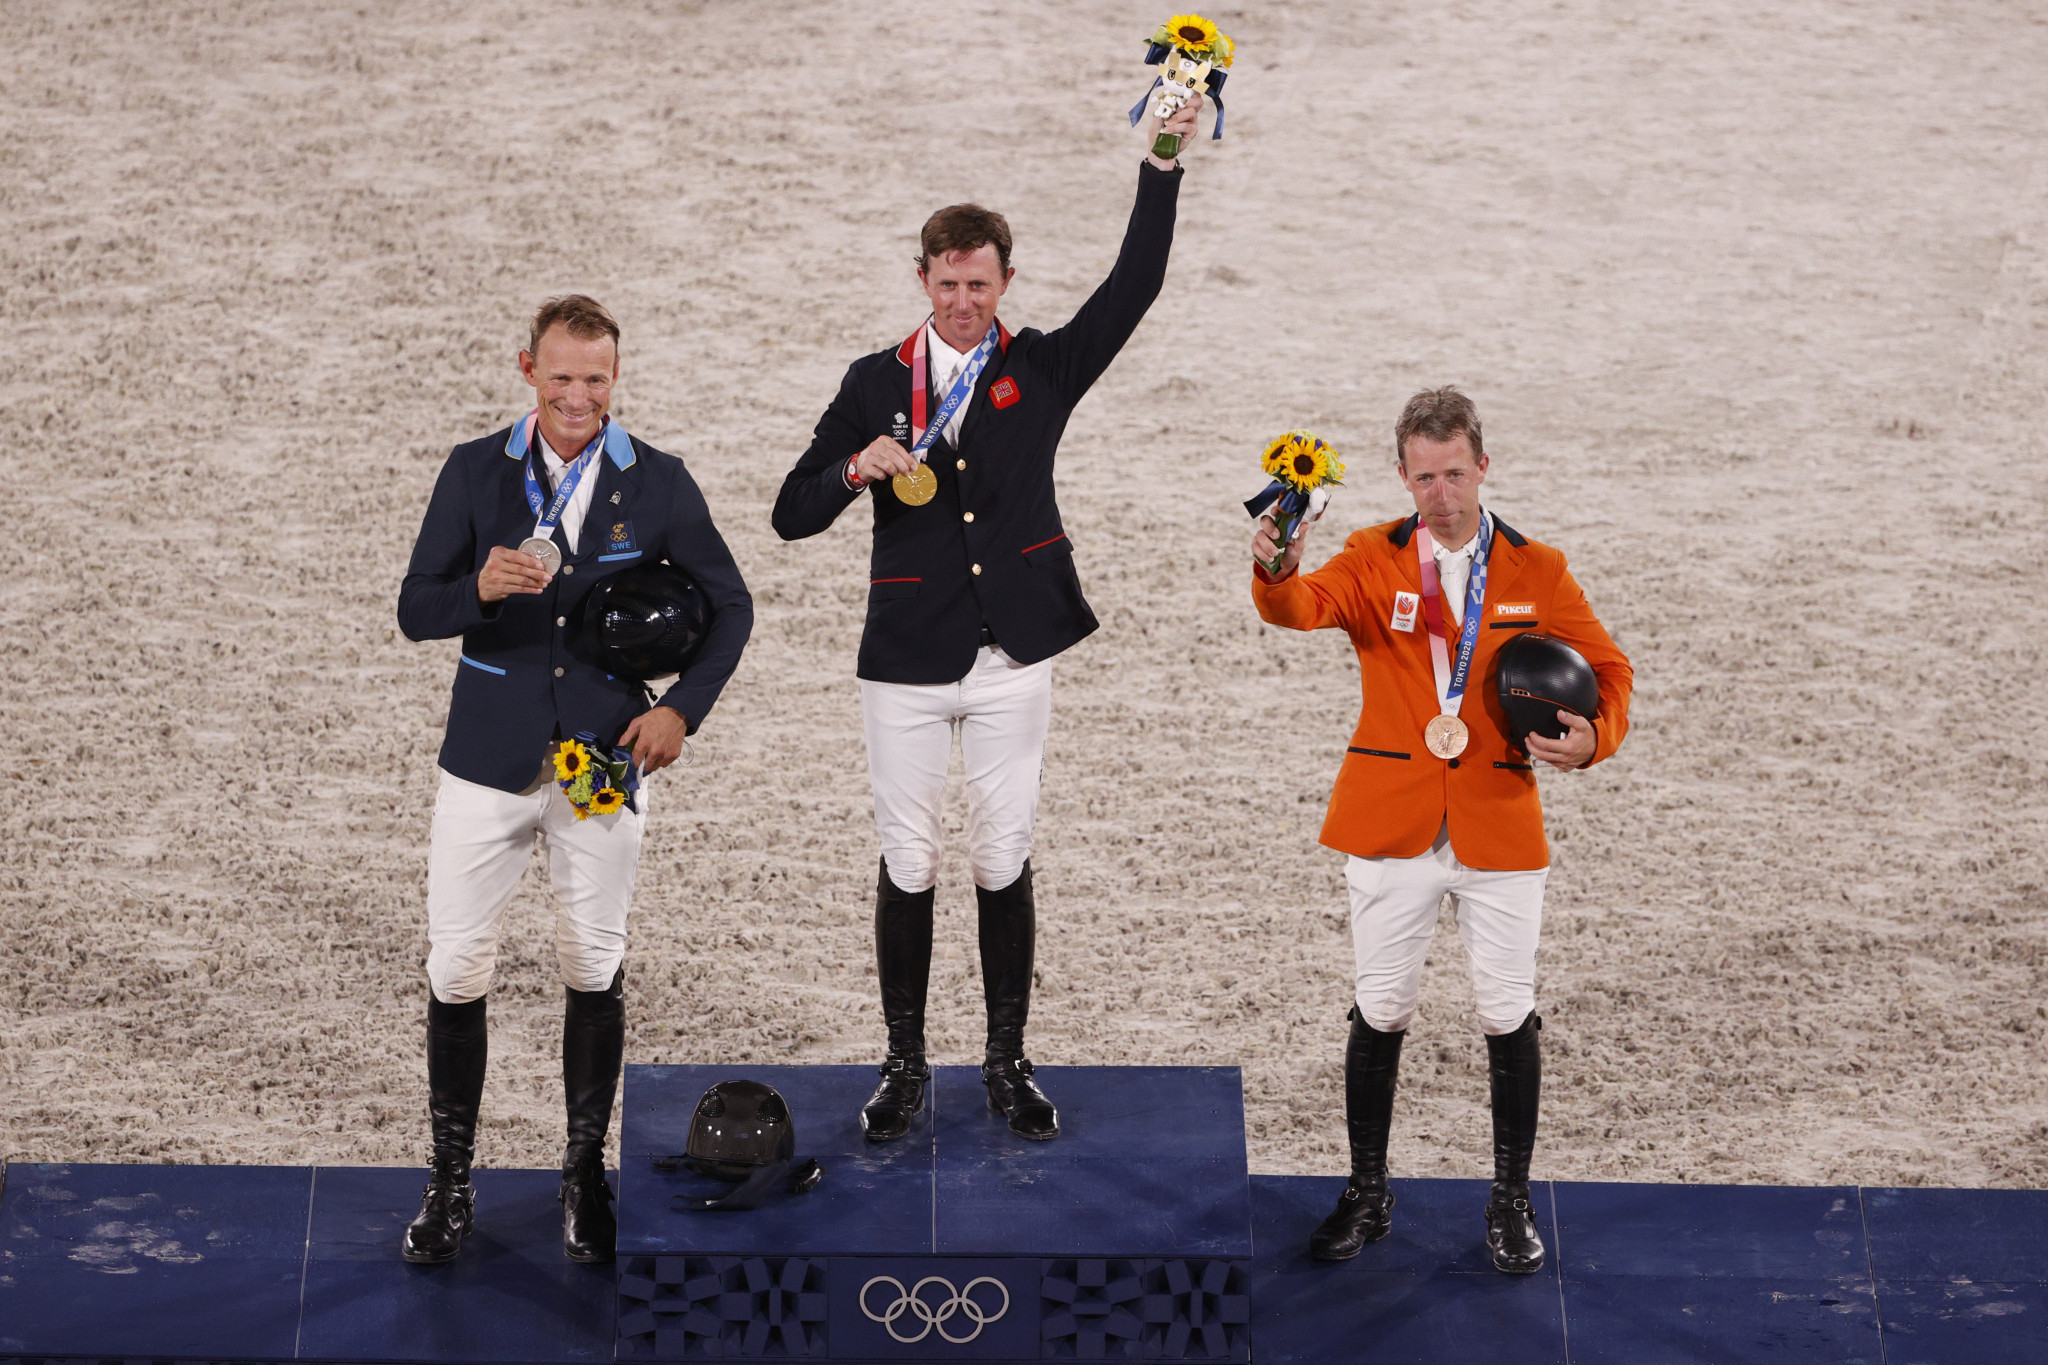 Maher wins Britain's second equestrian gold at Tokyo 2020 after jump-off joy